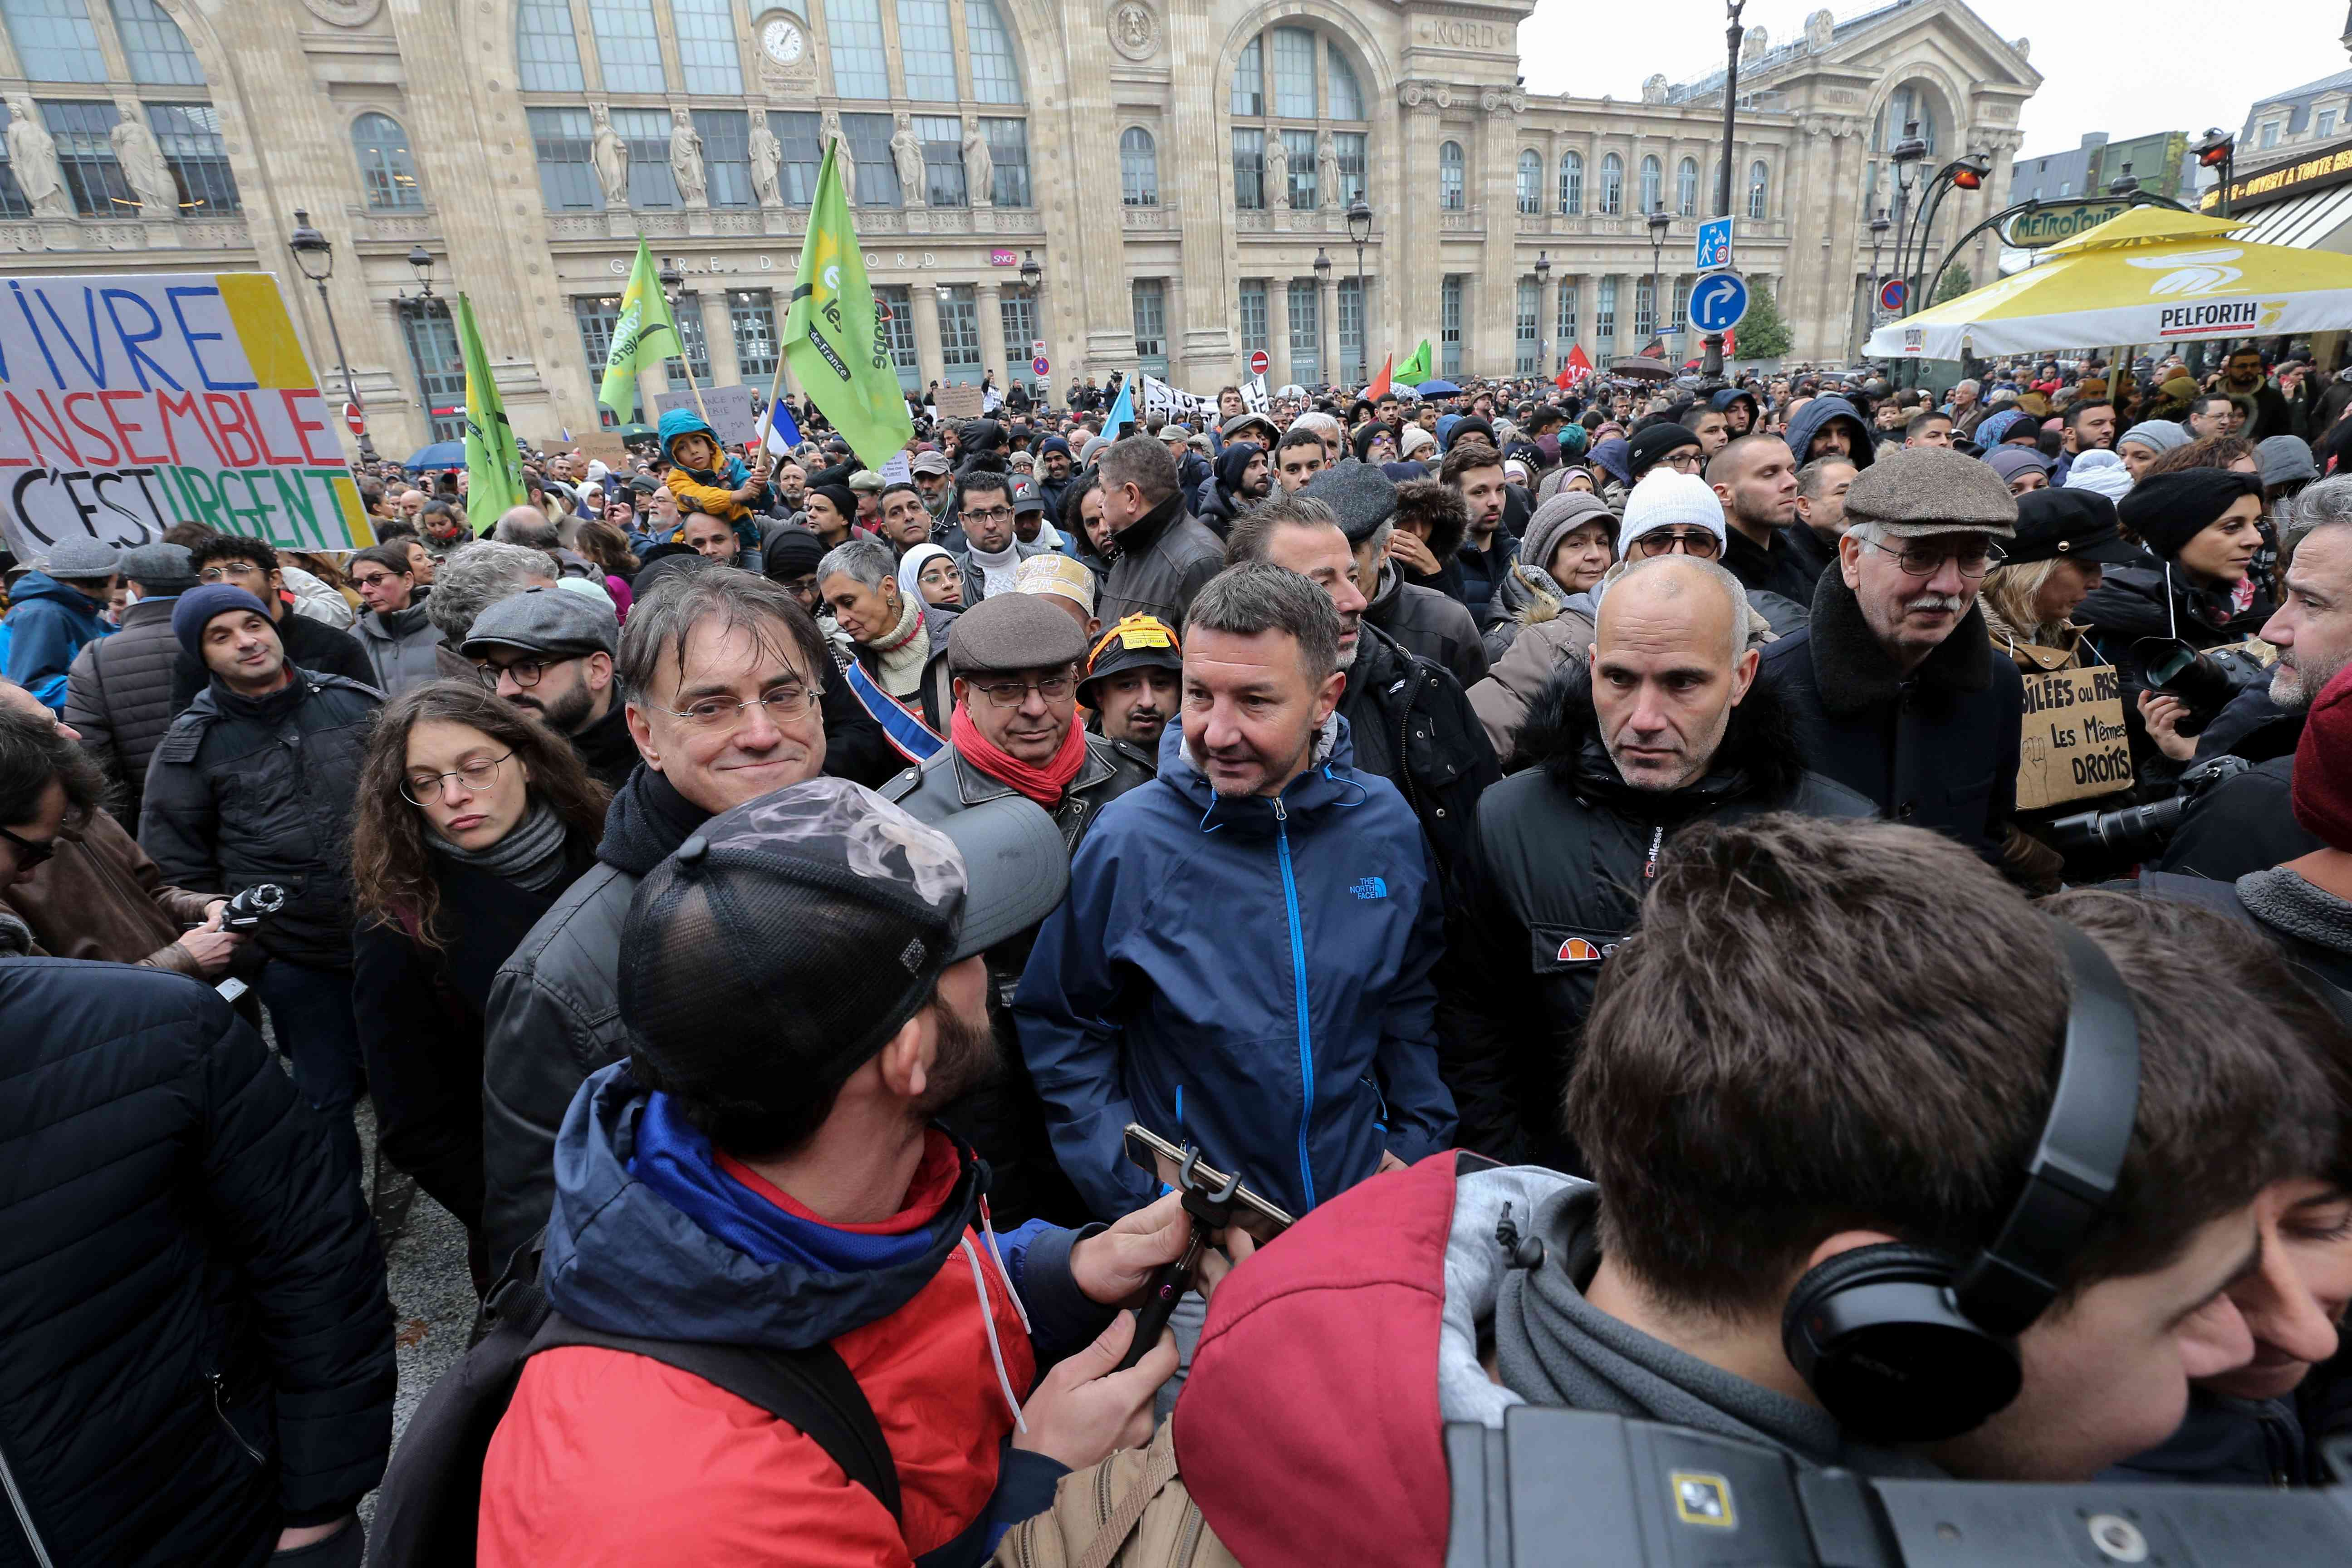 French far-left New Anti-Capitalist Party (NPA) member Olivier Besancenot (C) takes part in a march near the Gare du Nord, in Paris, on November 10, 2019, to protest against Islamophobia, at the call of several anti-racist activists and collectives.